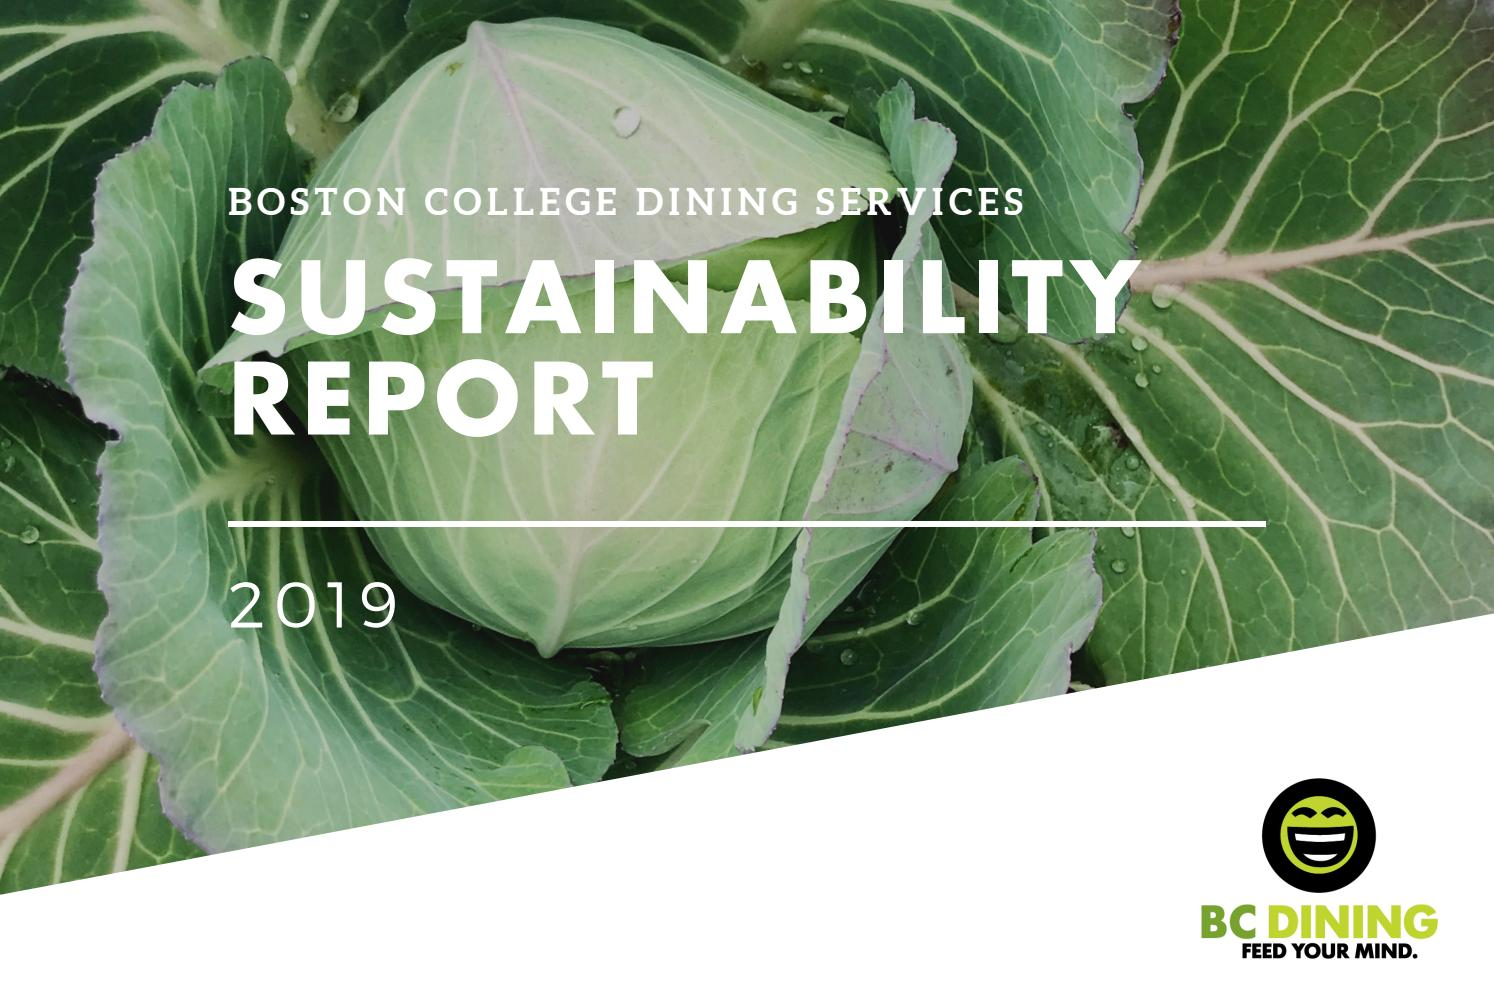 2019 Boston College Dining Services Sustainability Report By Bc Dining Issuu